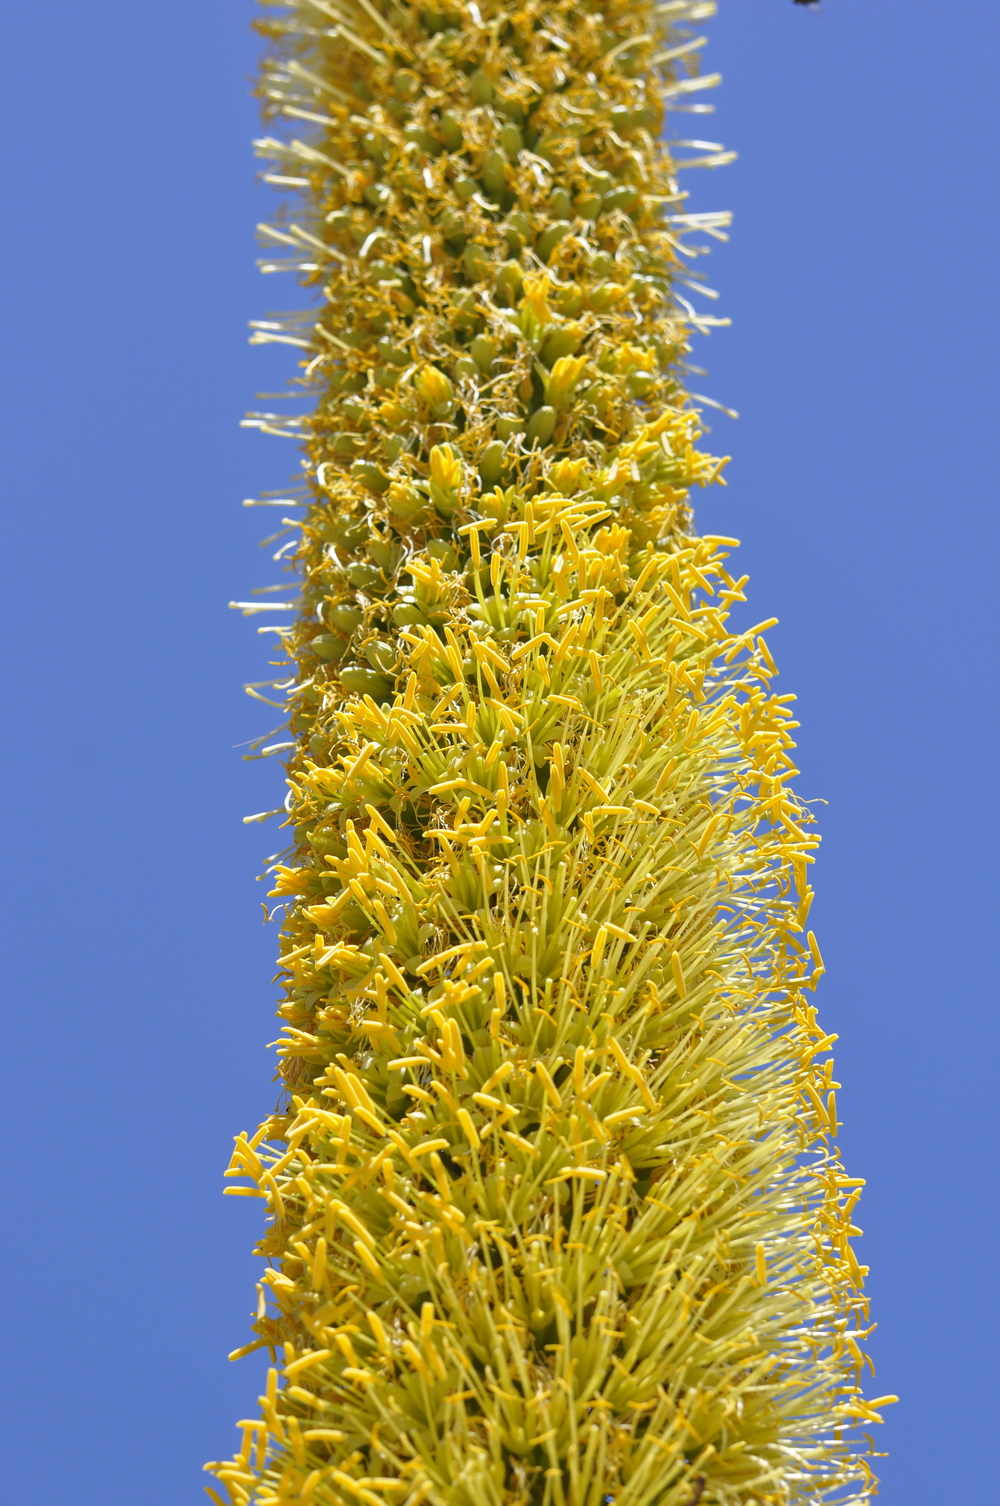 Blooming agave spire - restoring health through nature